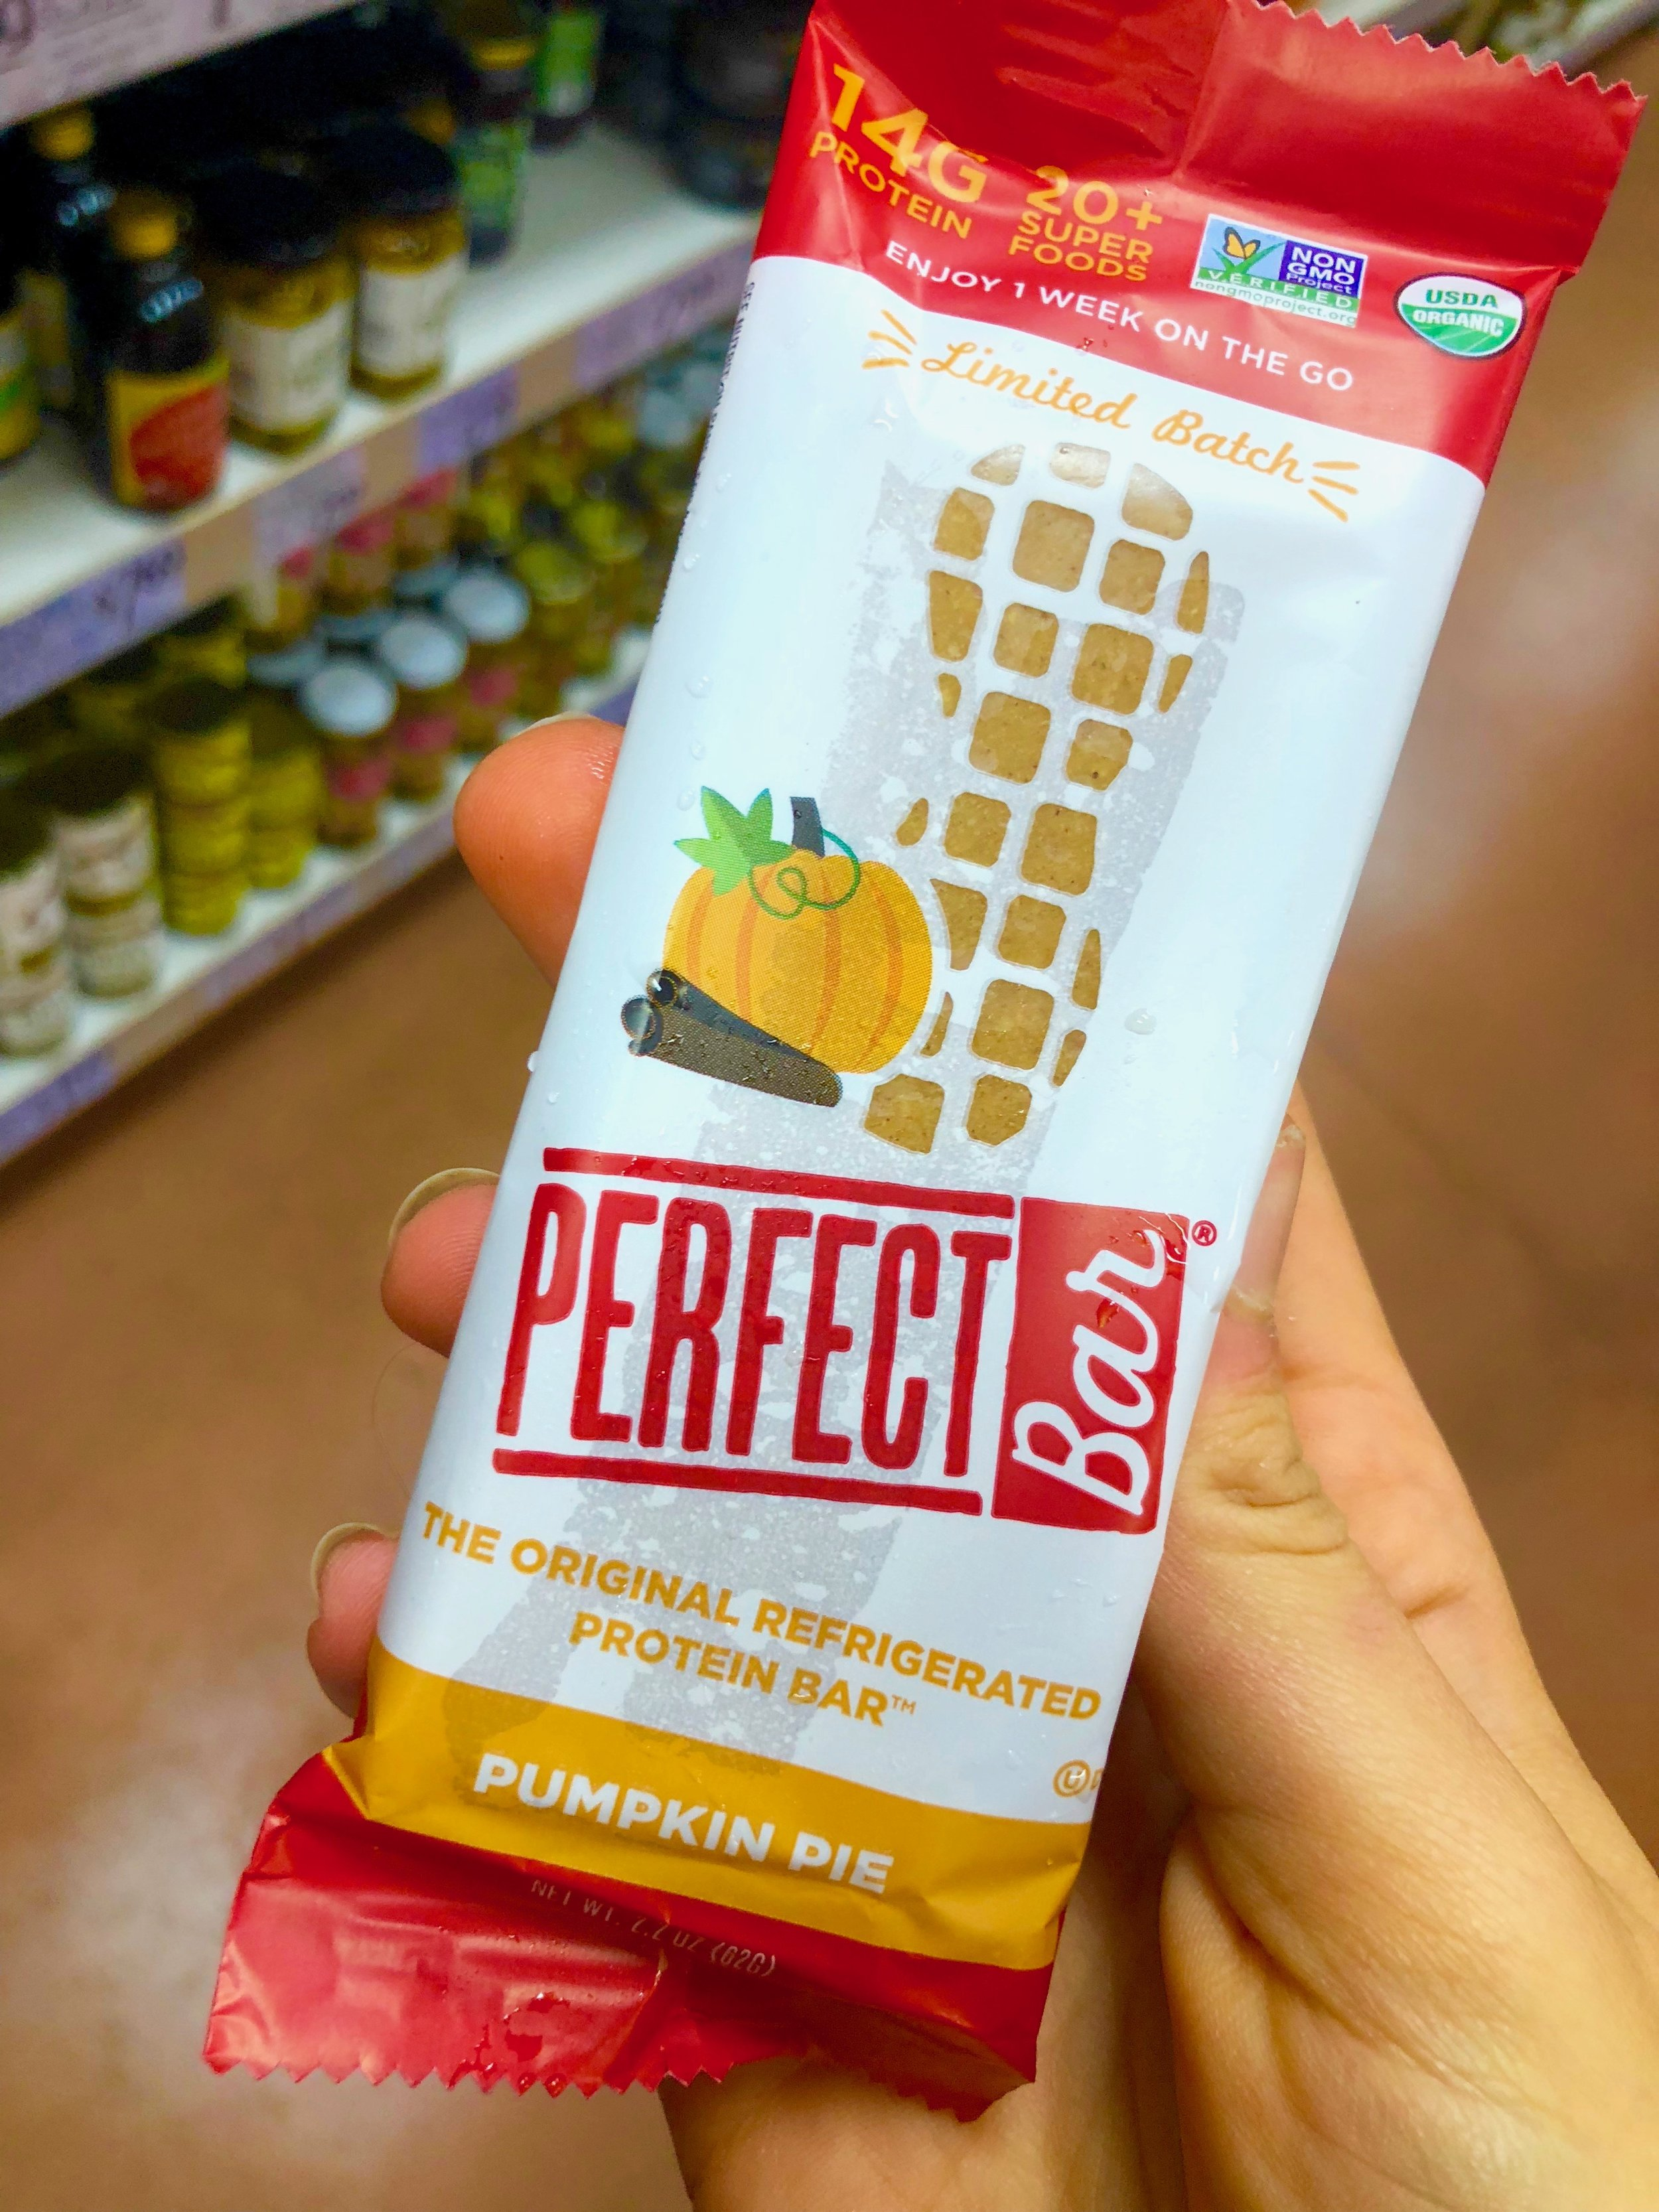 My beloved Perfect Bars. Oh how delicious are you. You can buy this other places besides TJ, but I haven't seen the Pumpkin Pie flavor anywhere else so naturally I had to get it. Just a good, quick breakfast option or bigger snack. Haven't tried it yet, but oh trust me- my instagram followers will know when I do.